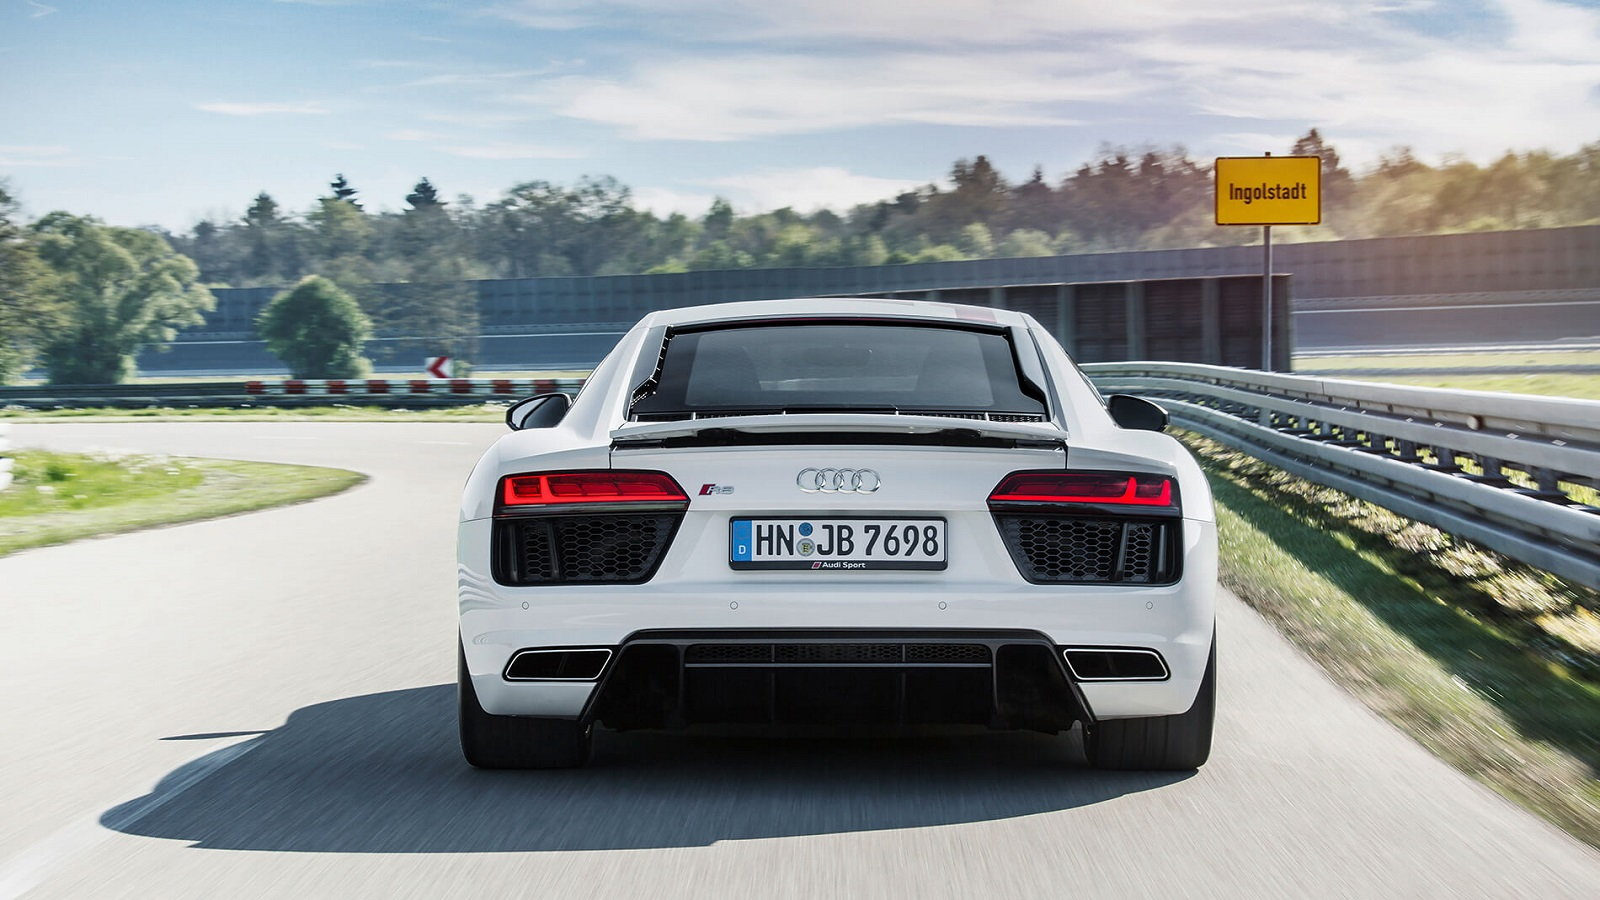 2018 R8 Rear Wheel Series is for Purists